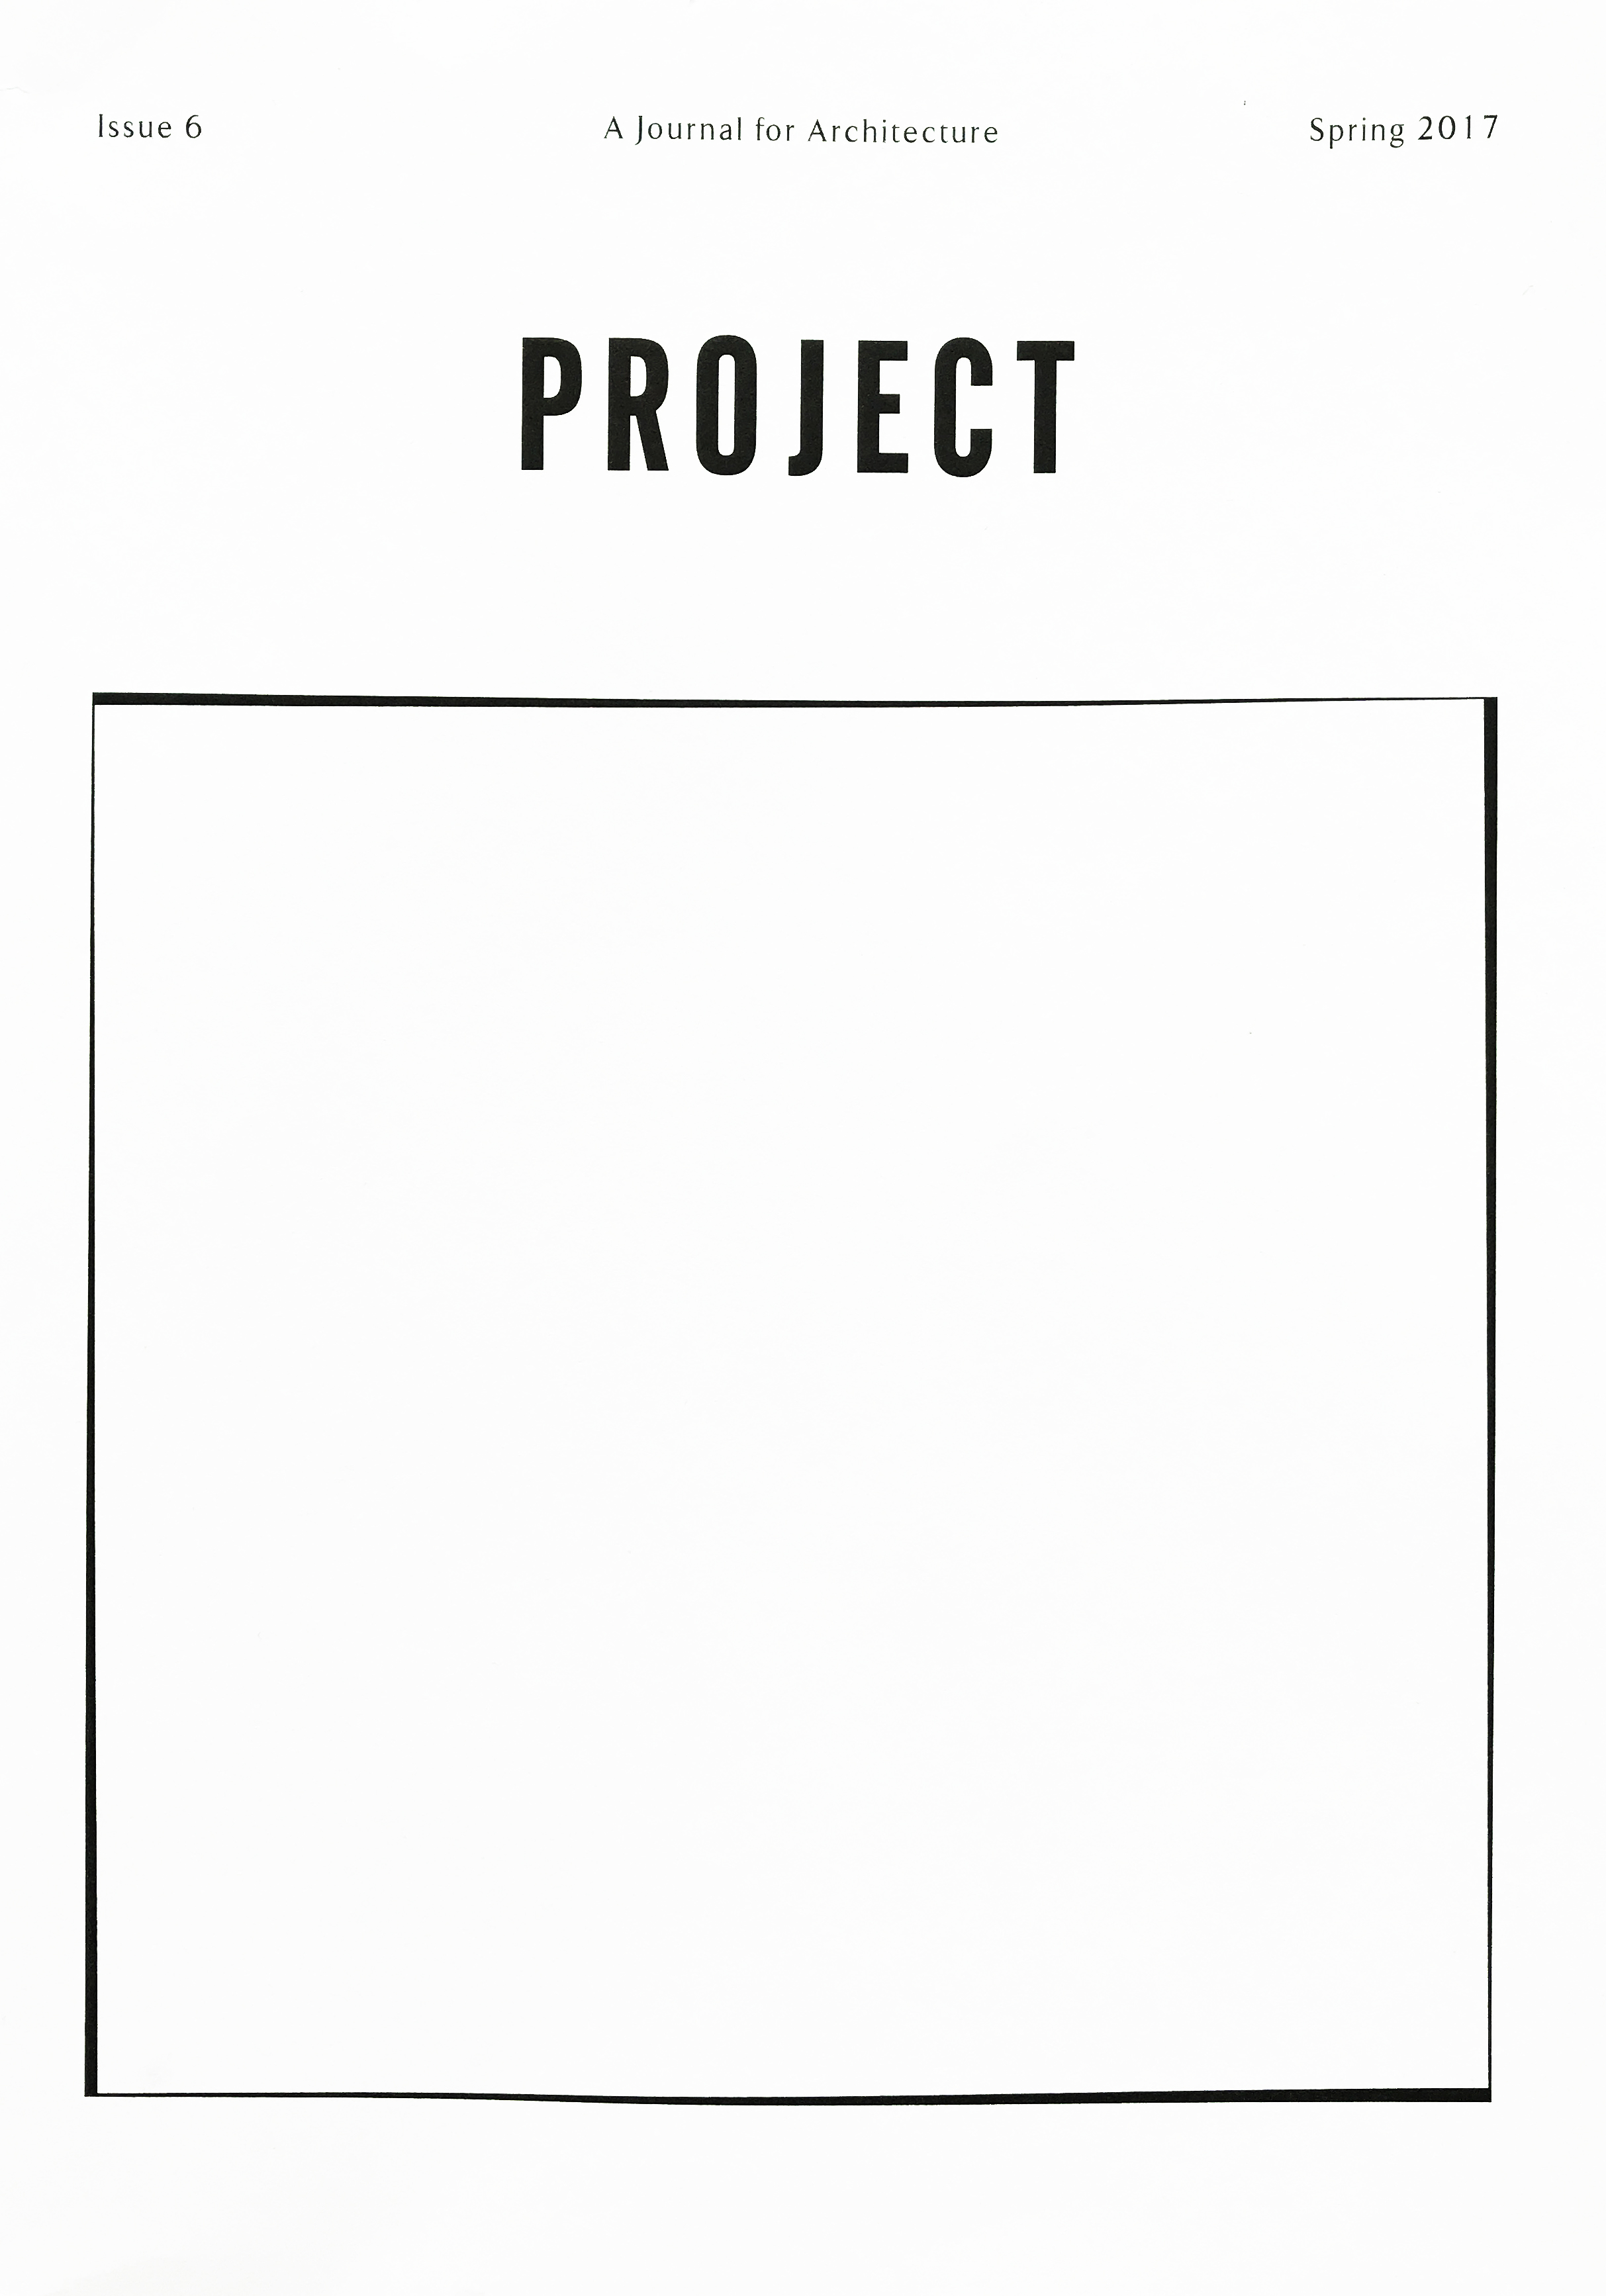 PROJECT JOURNAL ISSUE 6